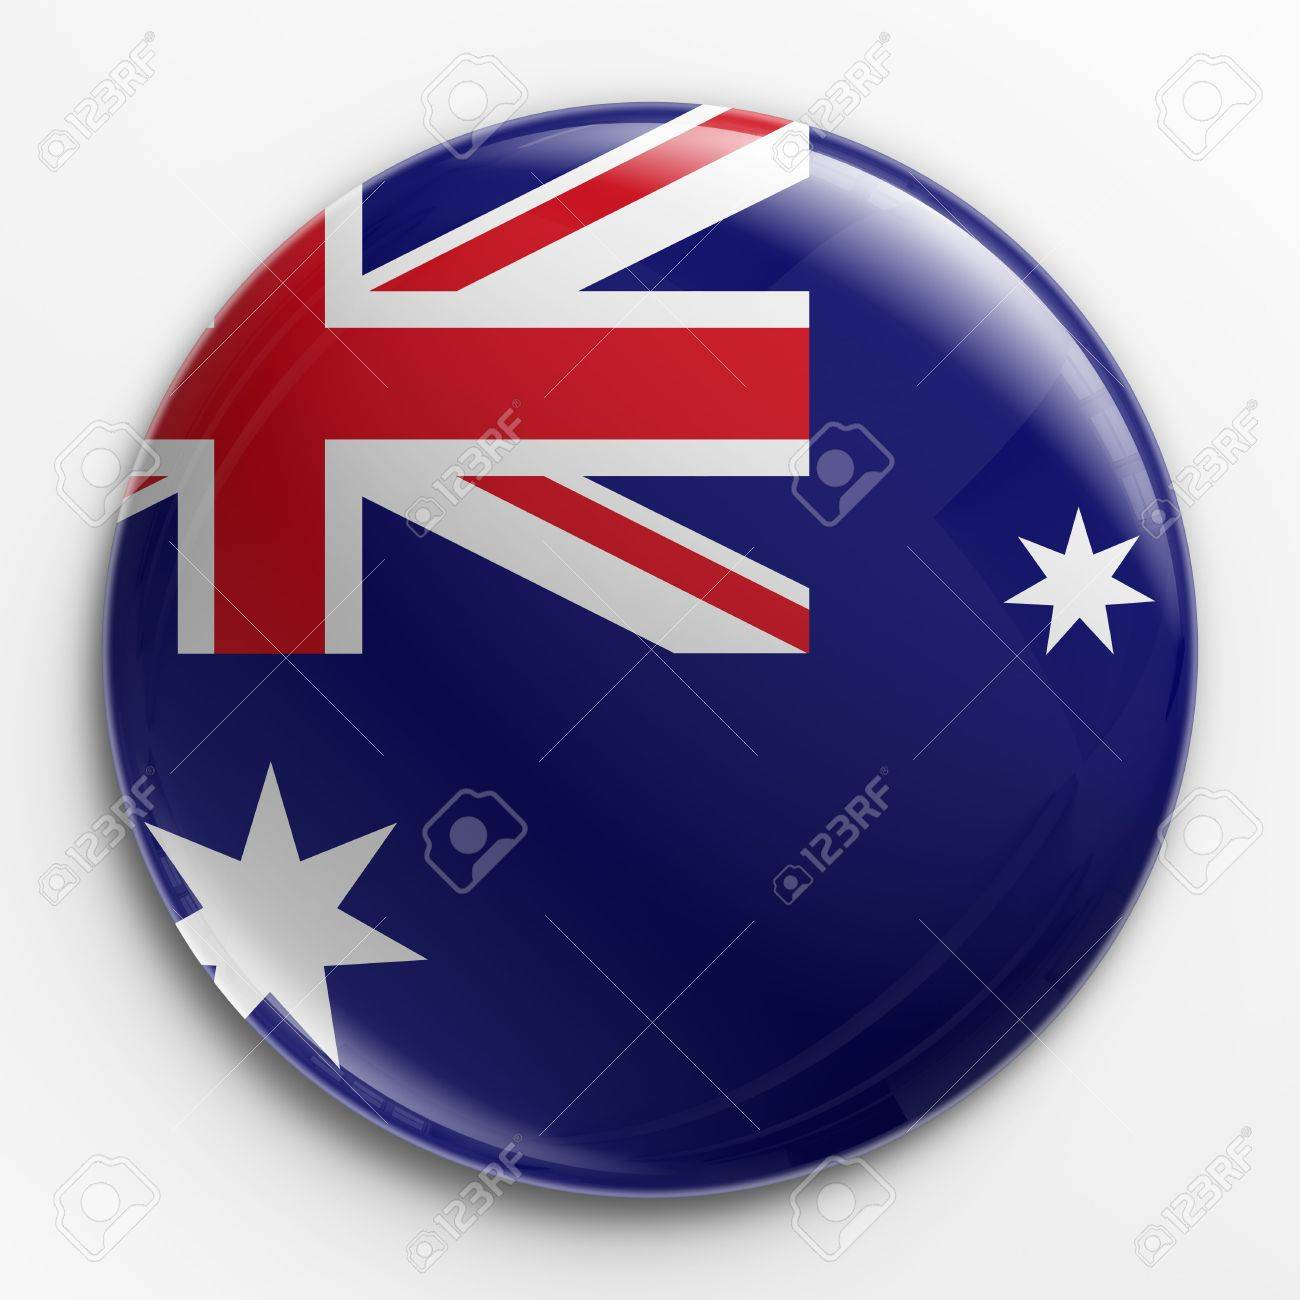 3d rendering of a badge with the Australian flag Stock Photo - 3279332